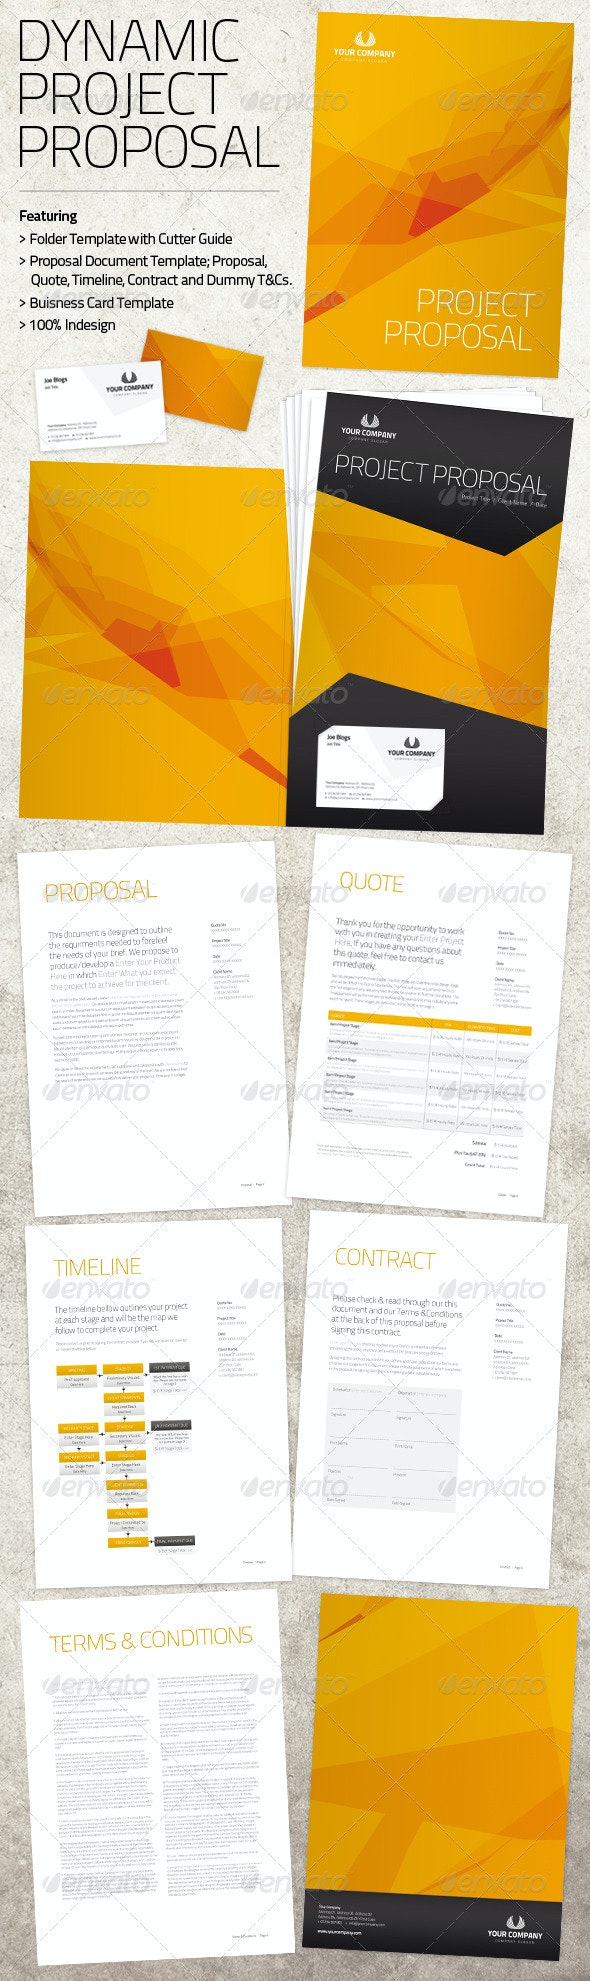 Dynamic Project Proposal Pack - Proposals & Invoices Stationery